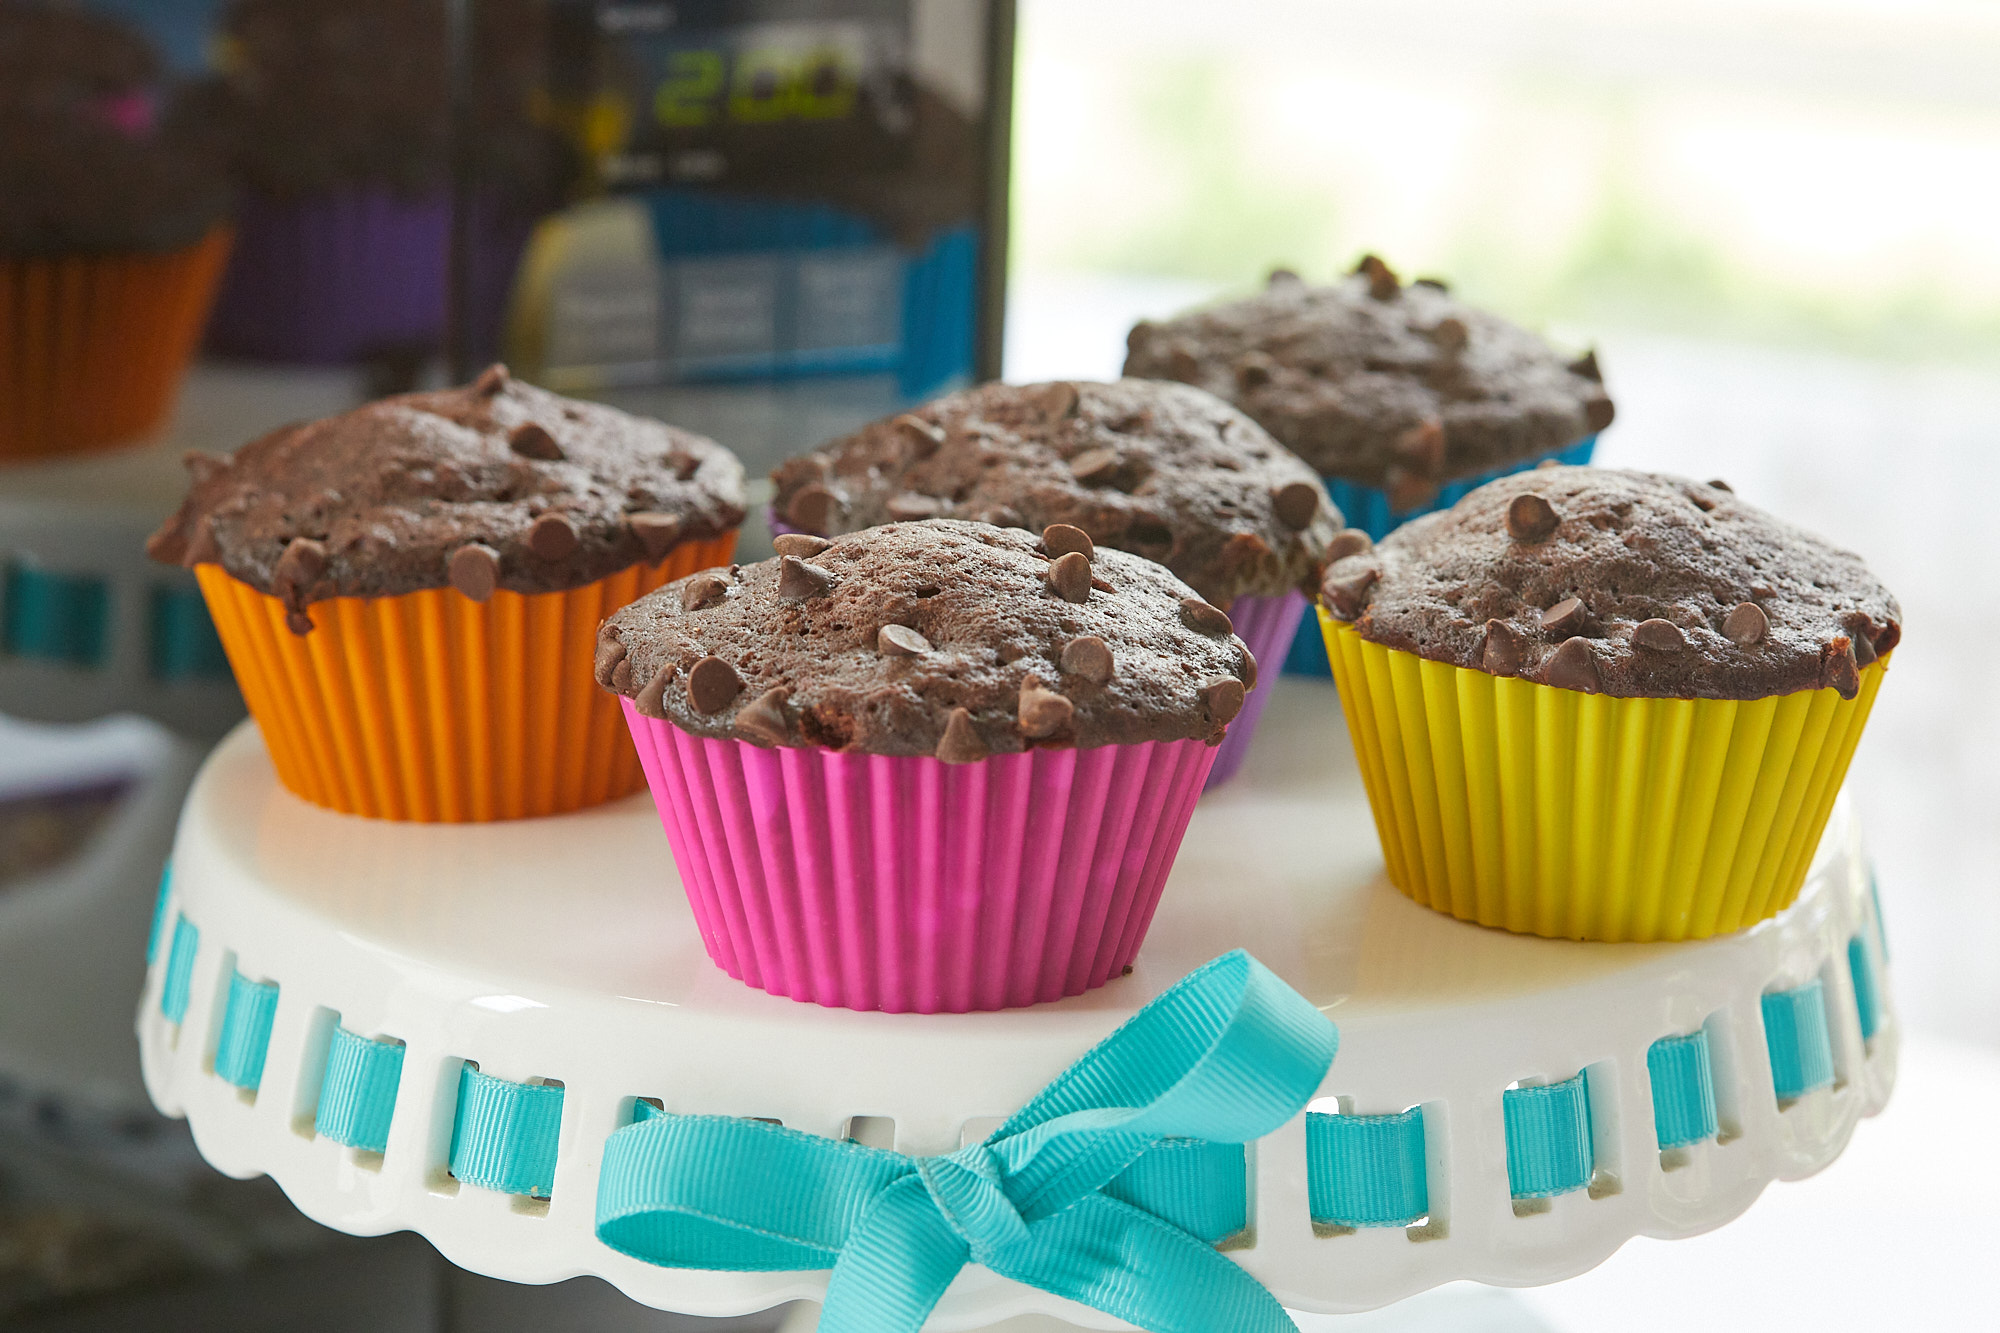 Five microwave chocolate muffins on a platter.